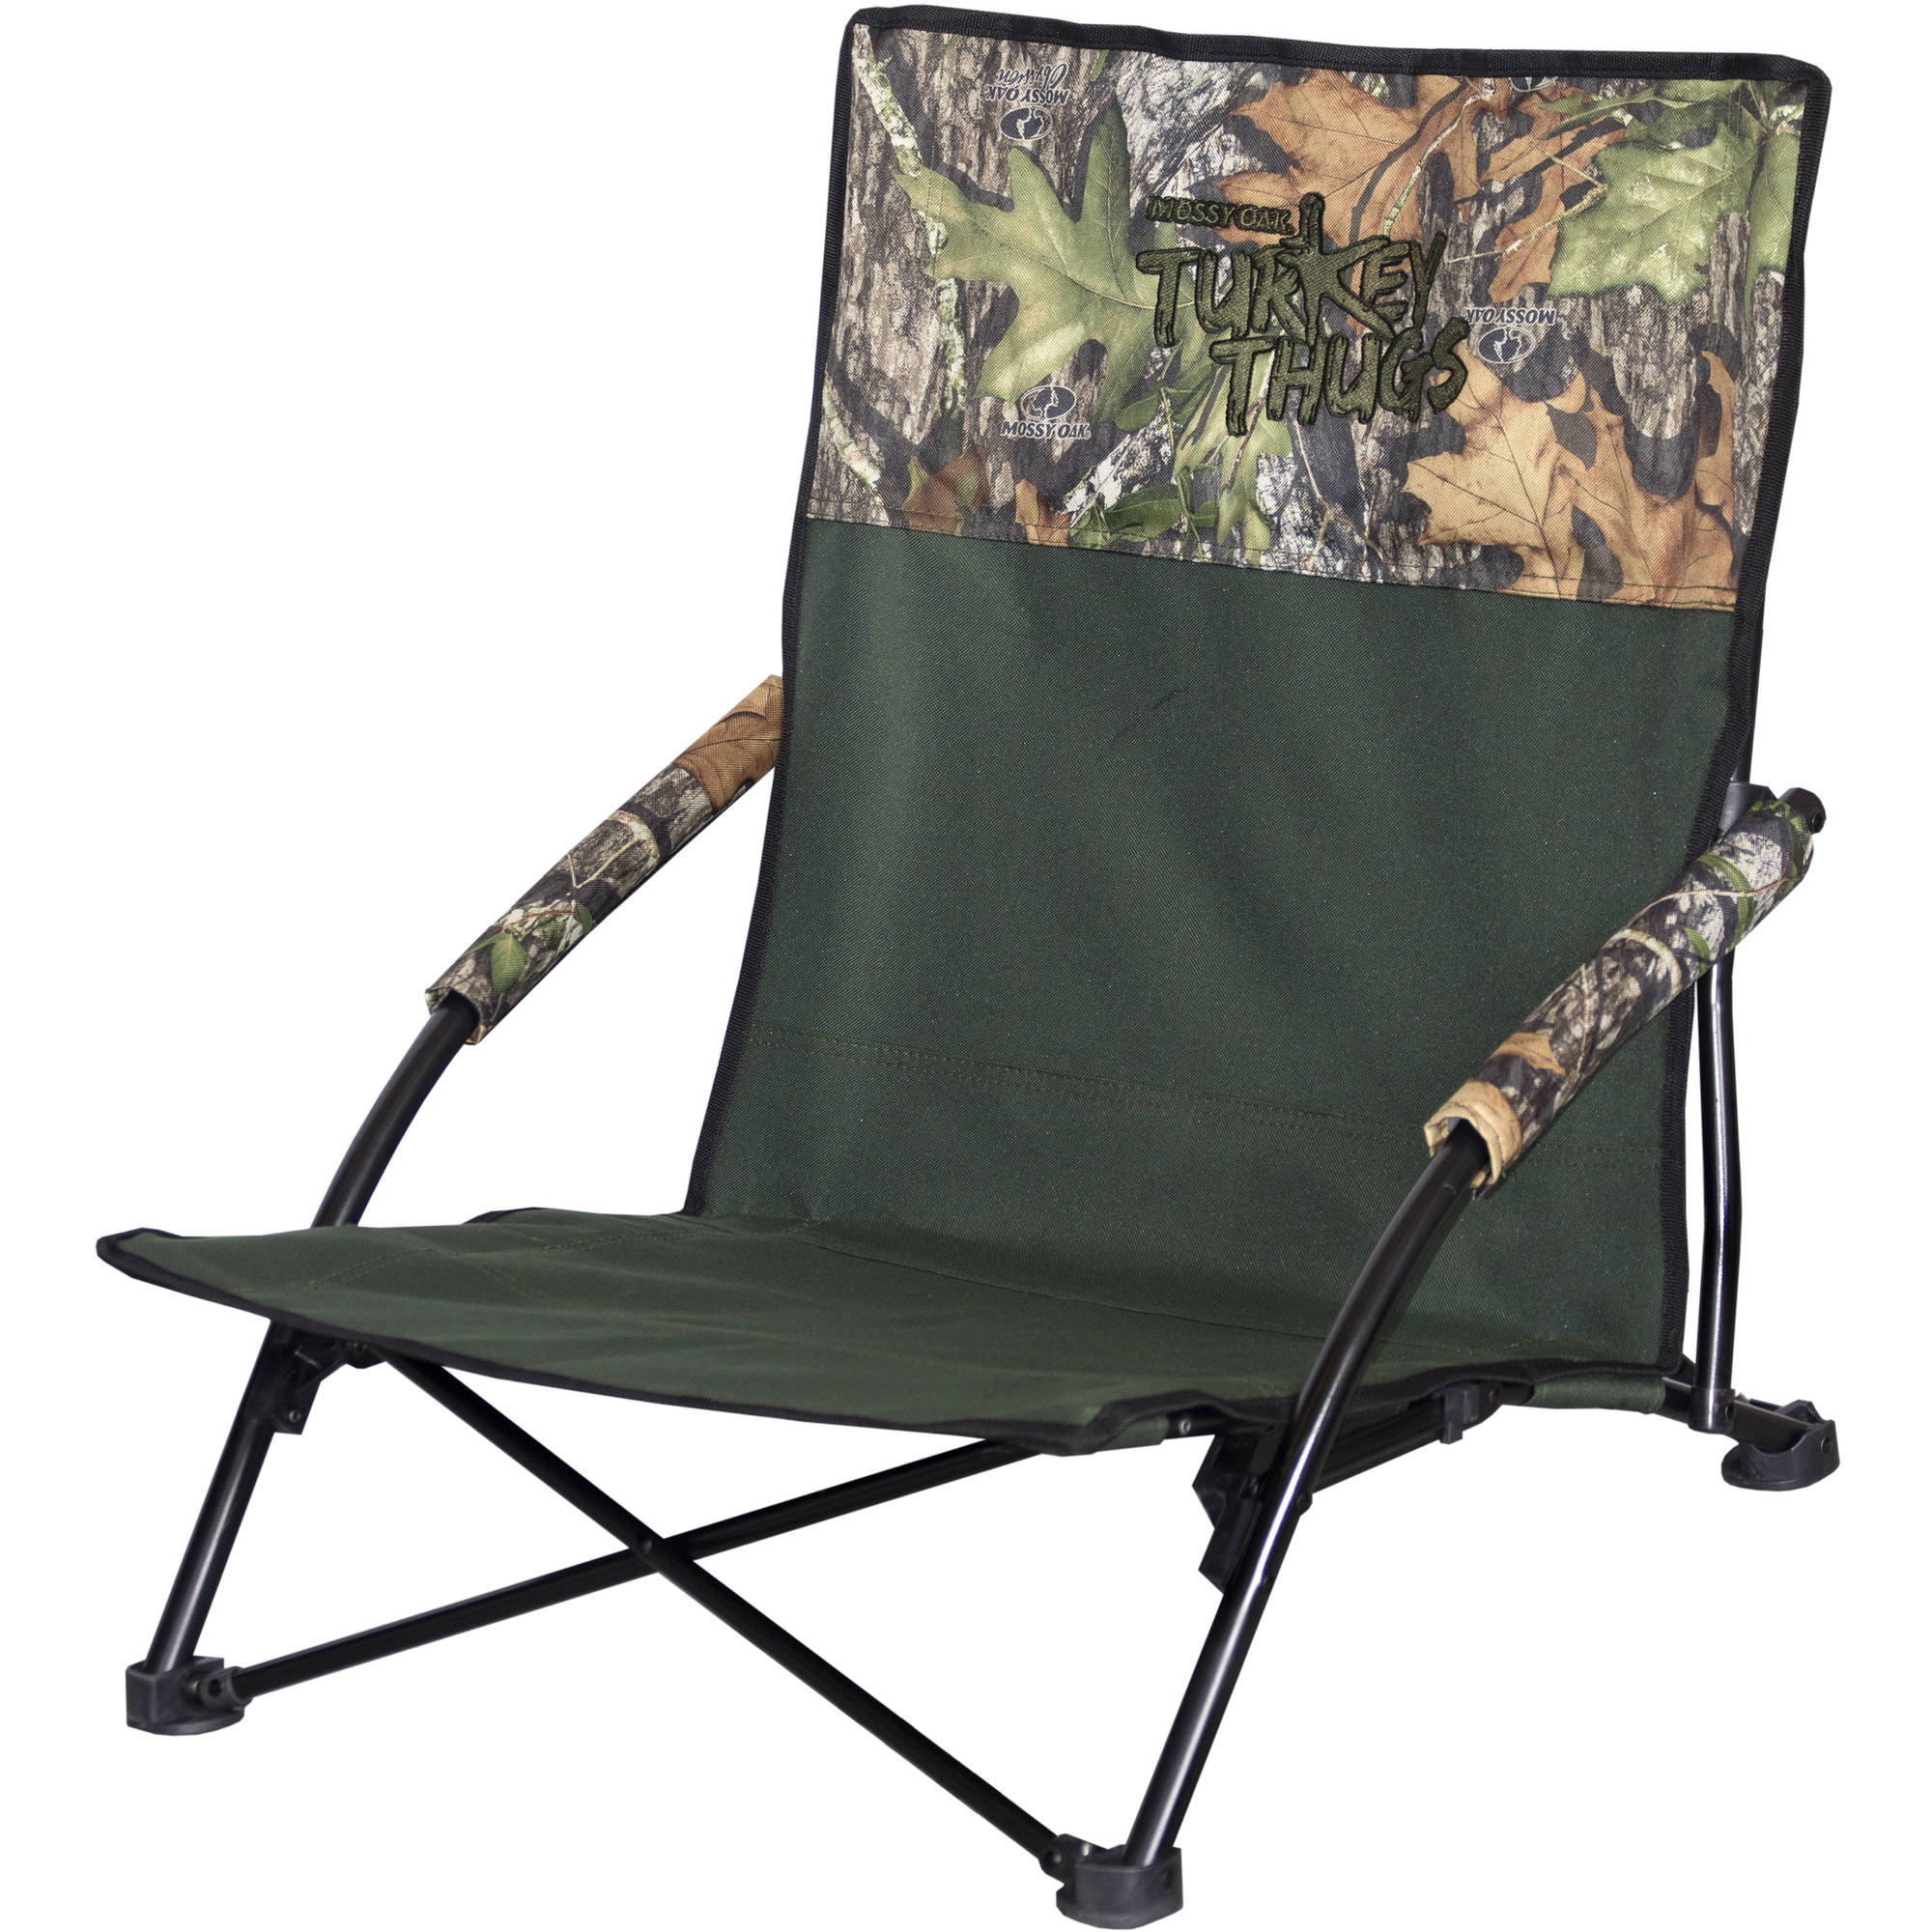 Mossy Oak Turkey Thugs Turkey Hunting Outdoor High Back Folding Camping Chair